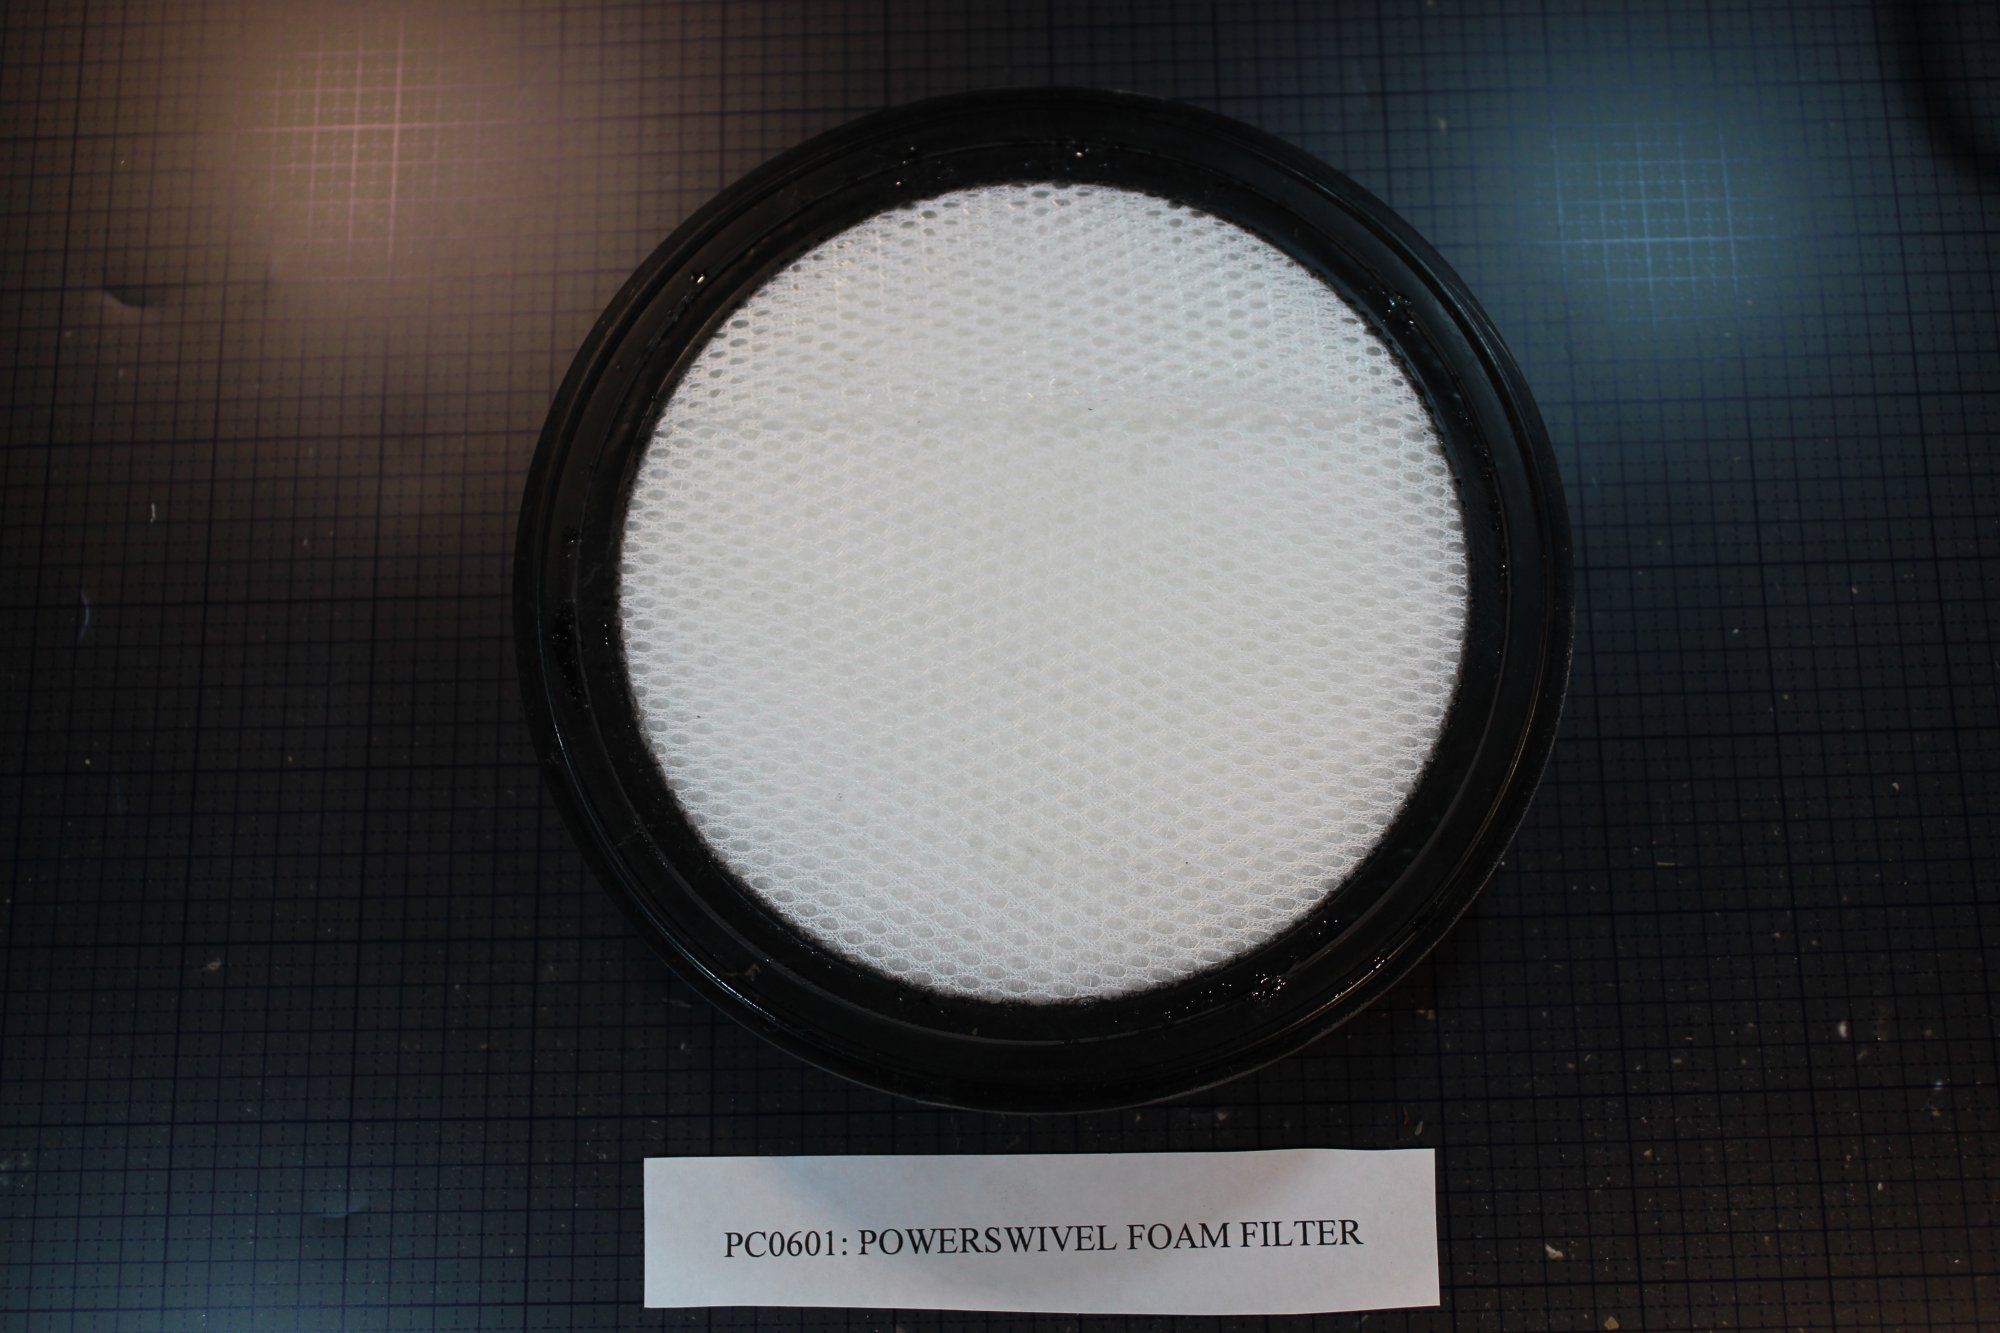 PC0601: Powerswivel Foam Filter Consumable Product